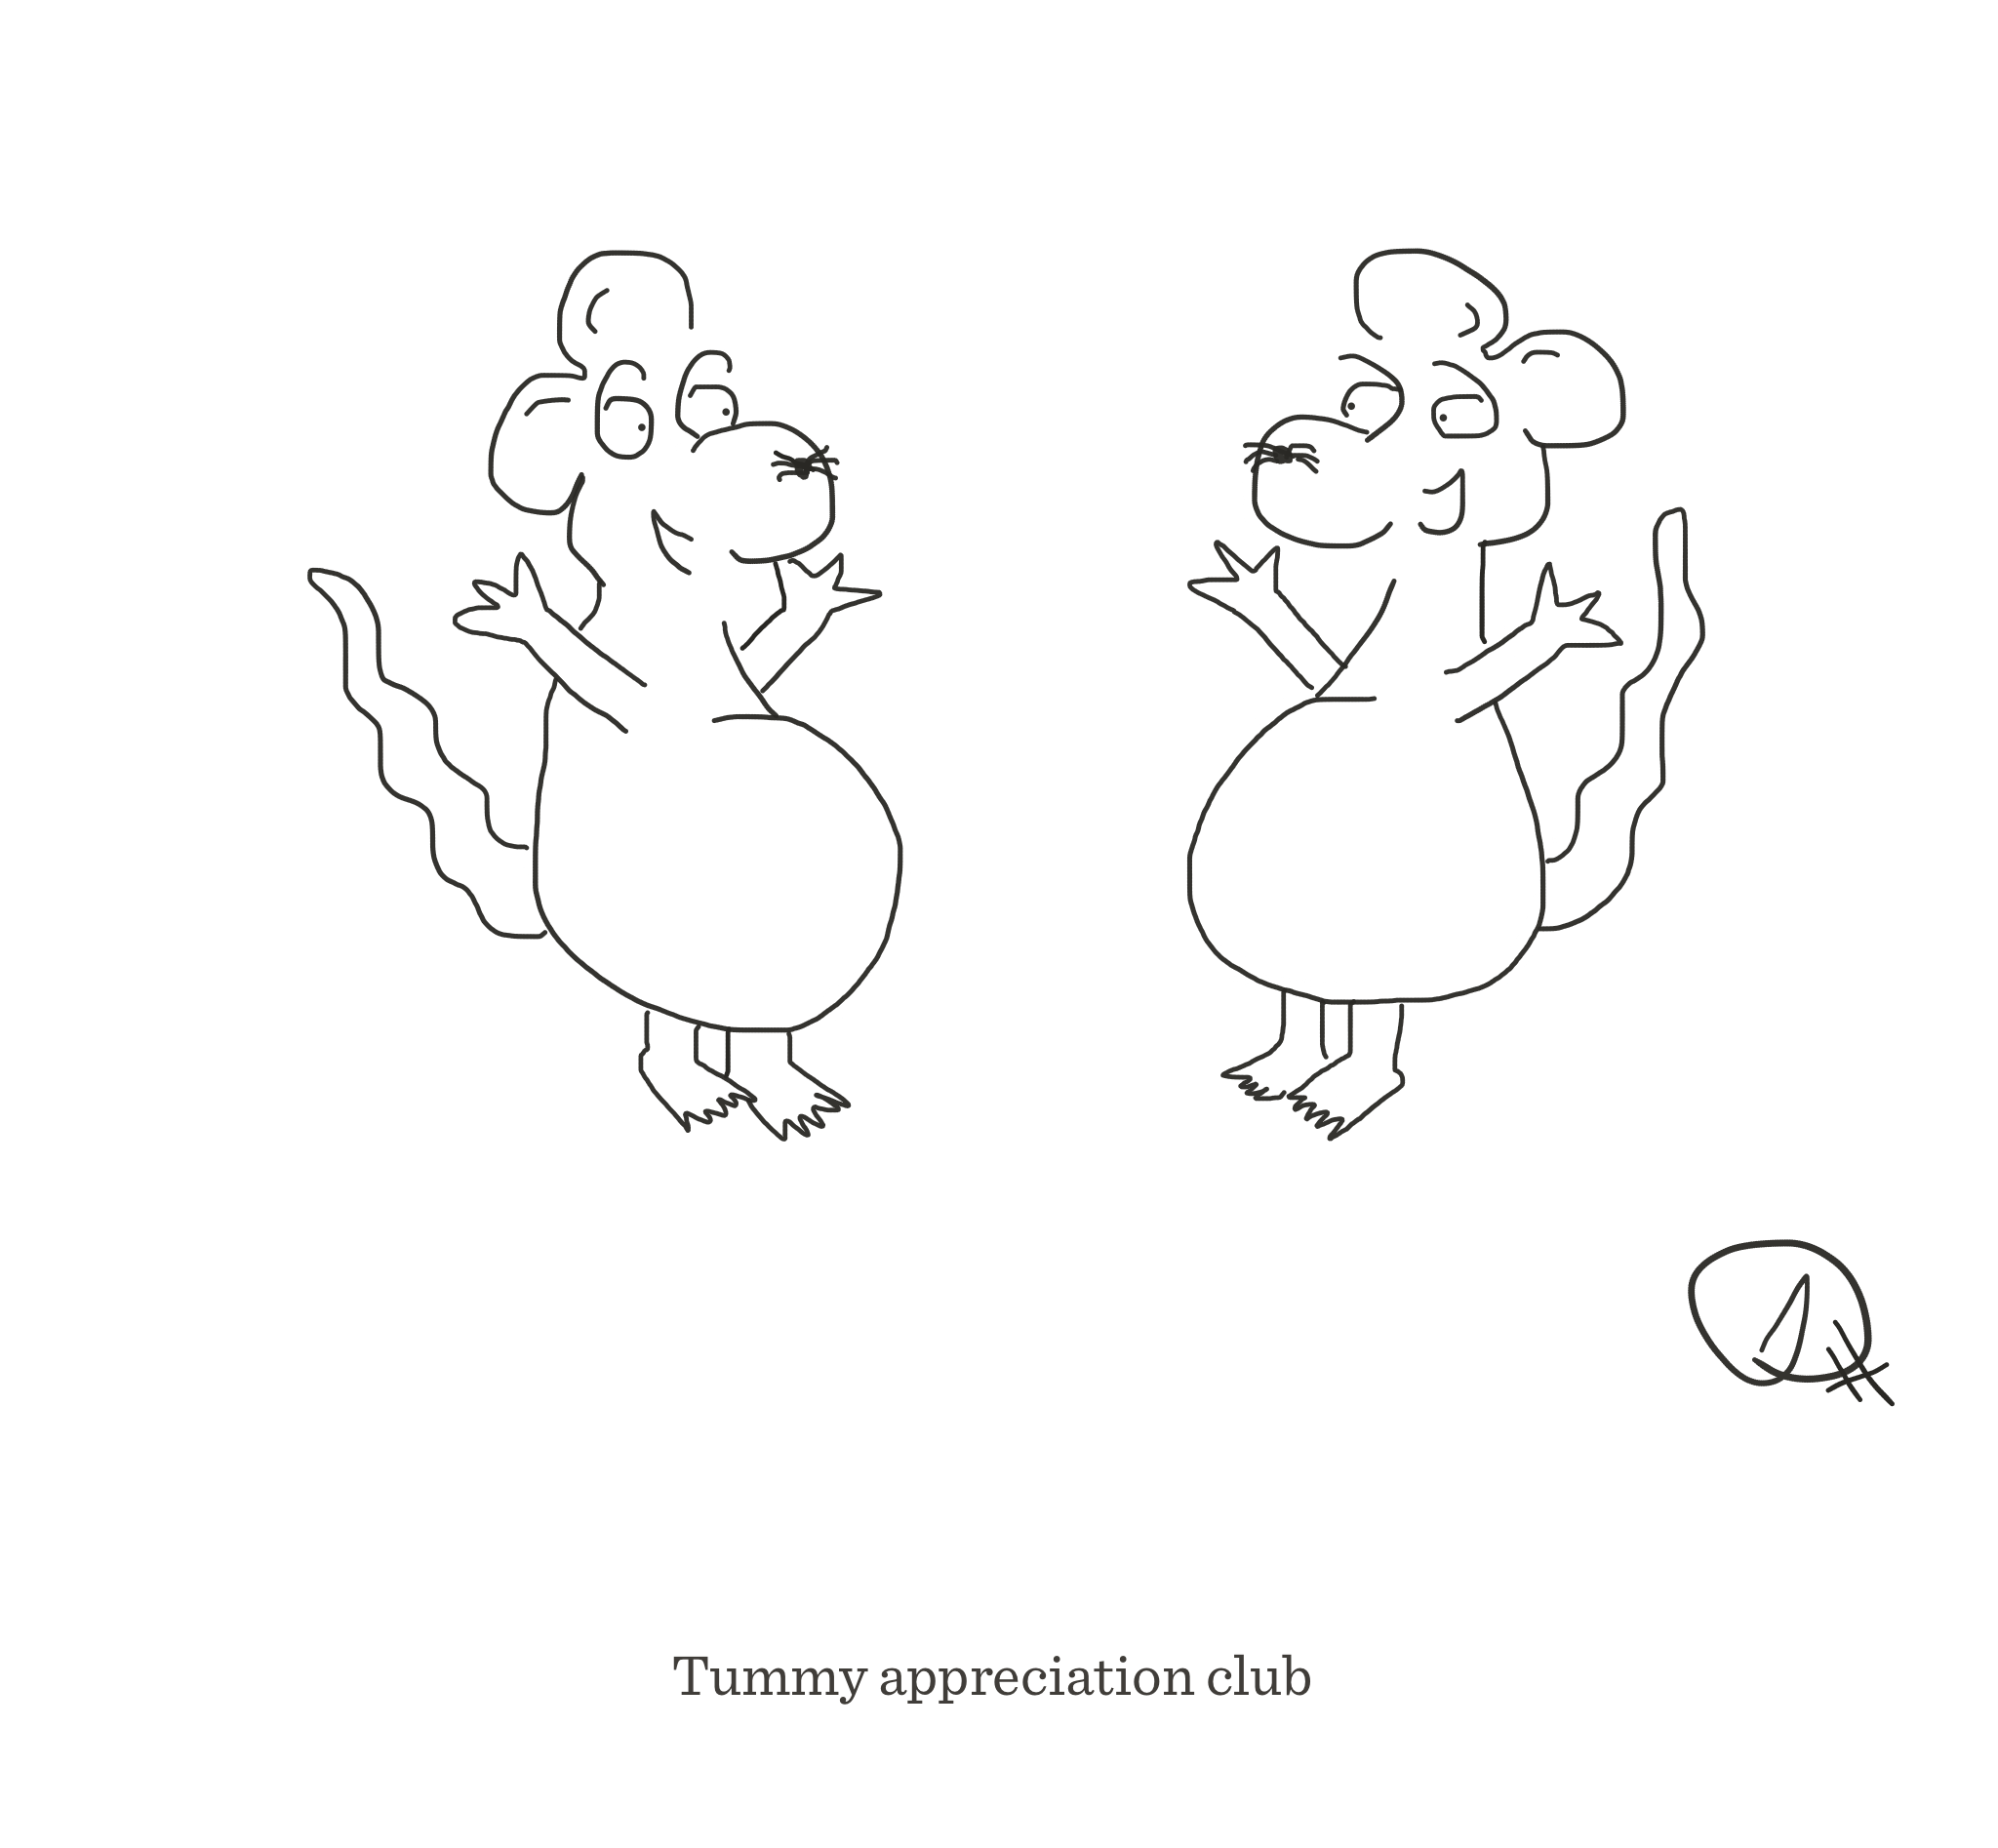 Tummy appreciation club, The Happy Rat, Sarah Hunt